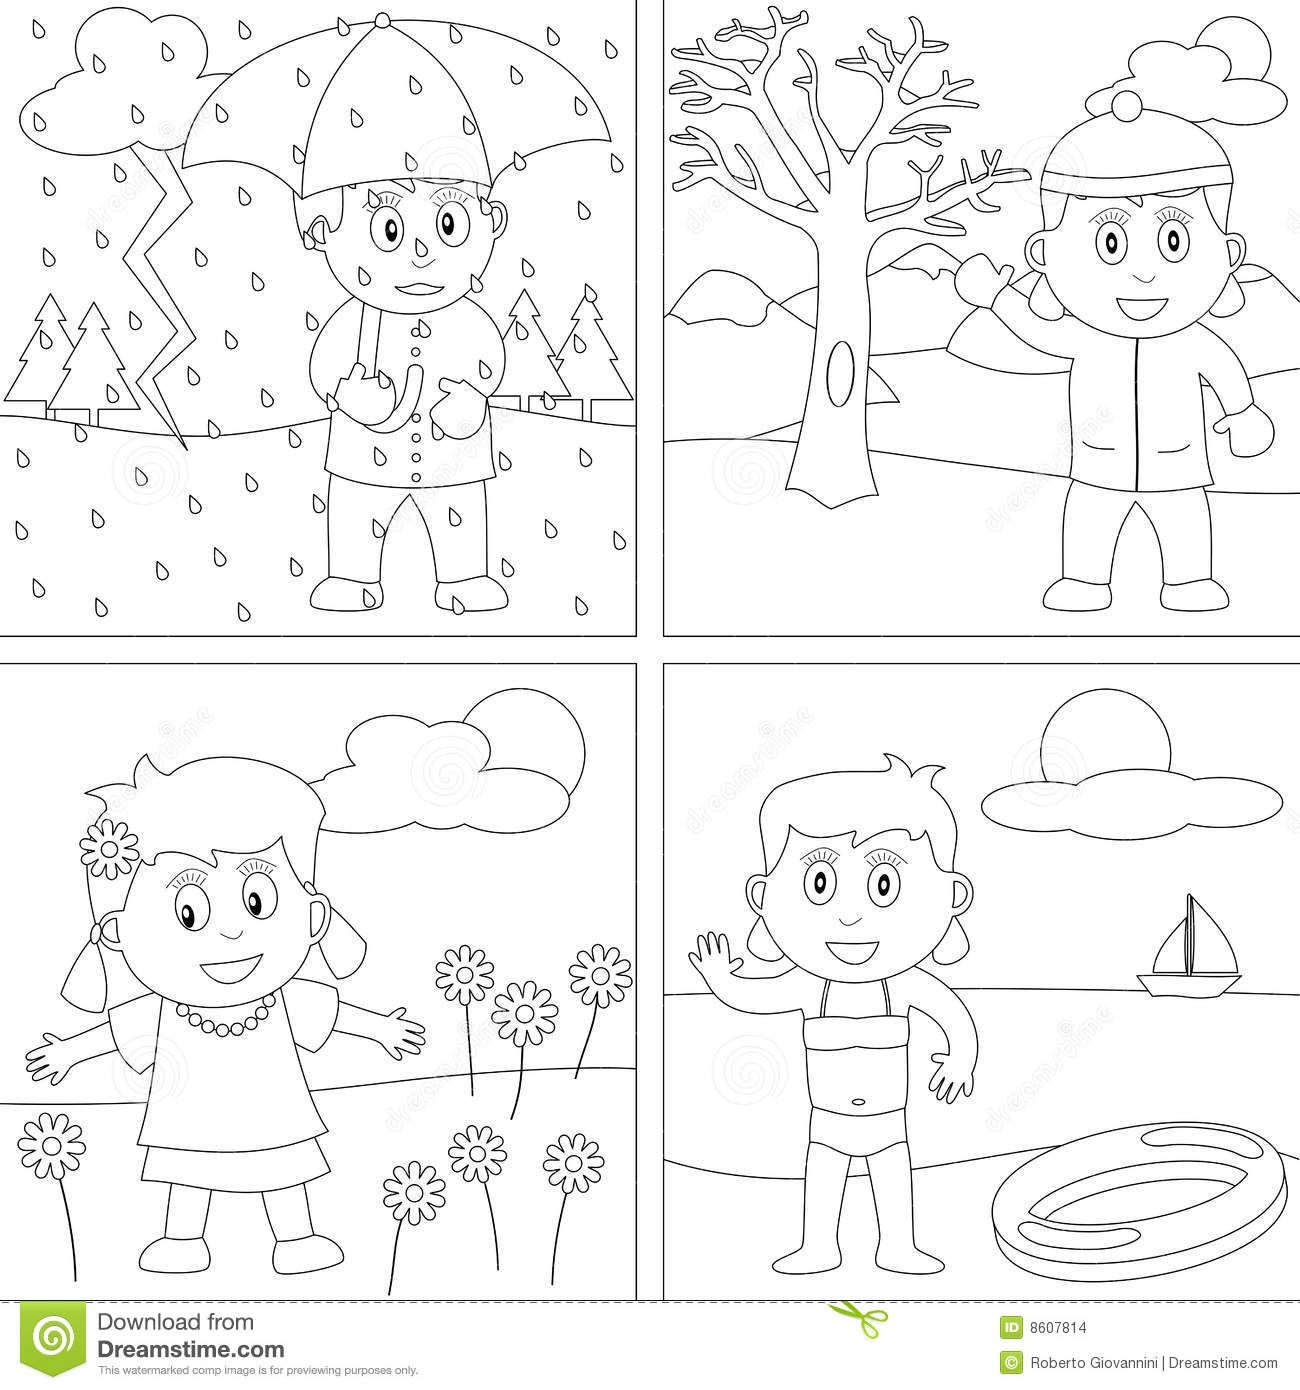 Printable Seasons Coloring Pictures With Seasons Coloring Pages | ใบ ...